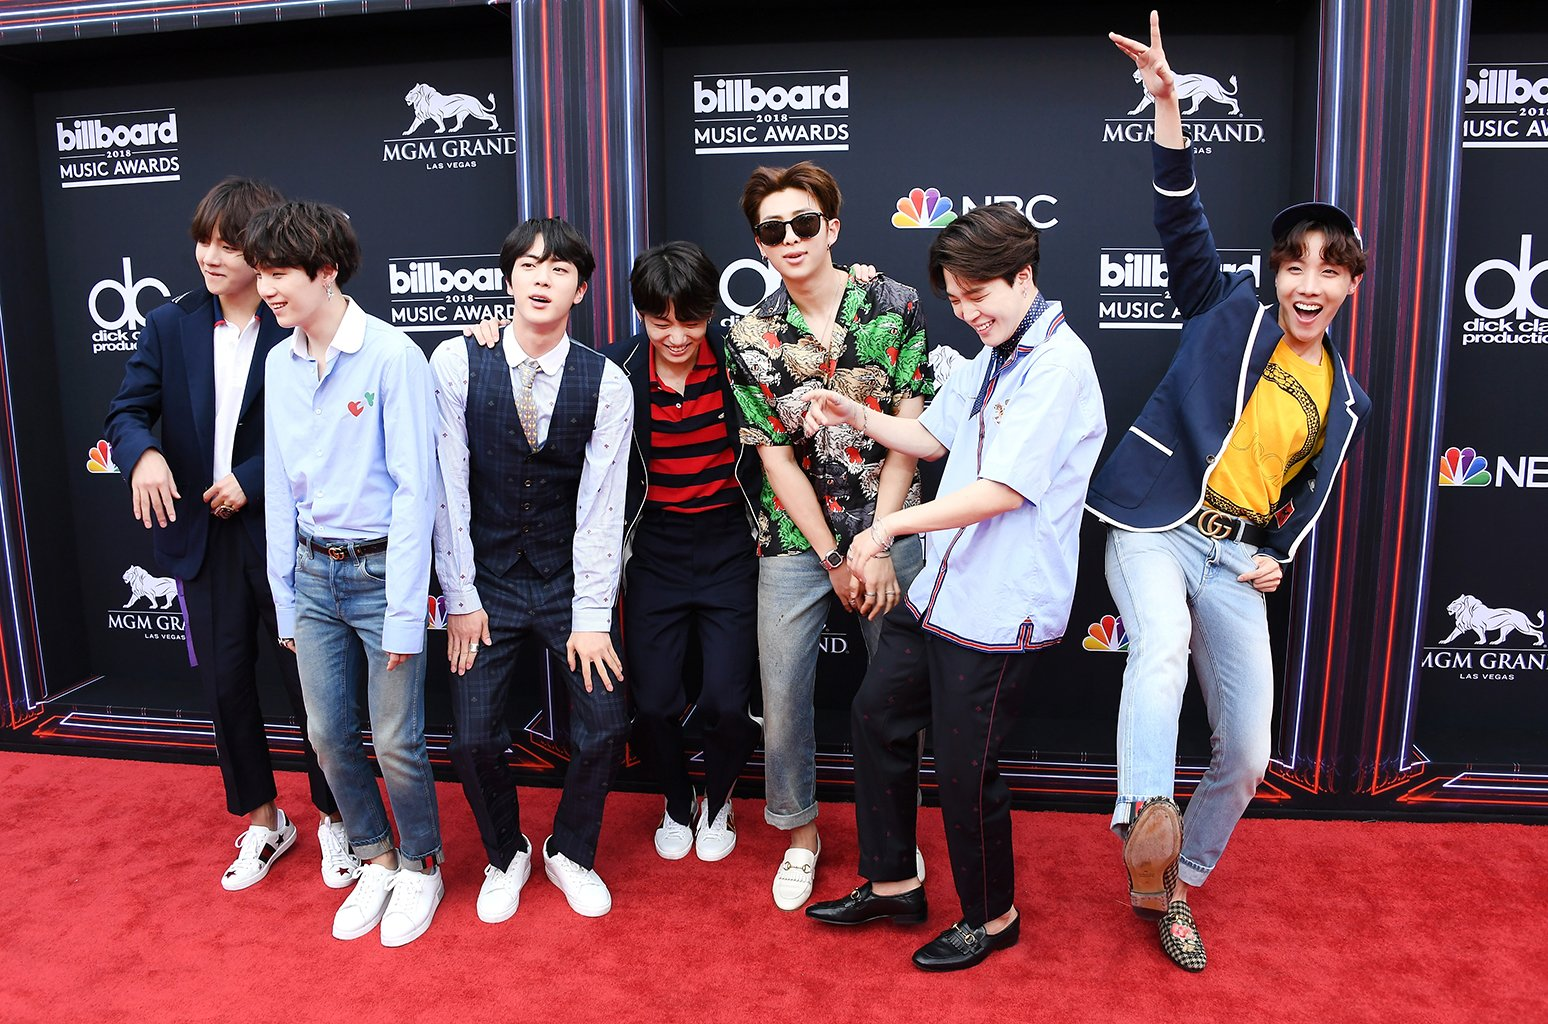 See all the Red Carpet photos from the @BBMAs https://t.co/uhZqVv8ELQ https://t.co/jdT8FNU3KY